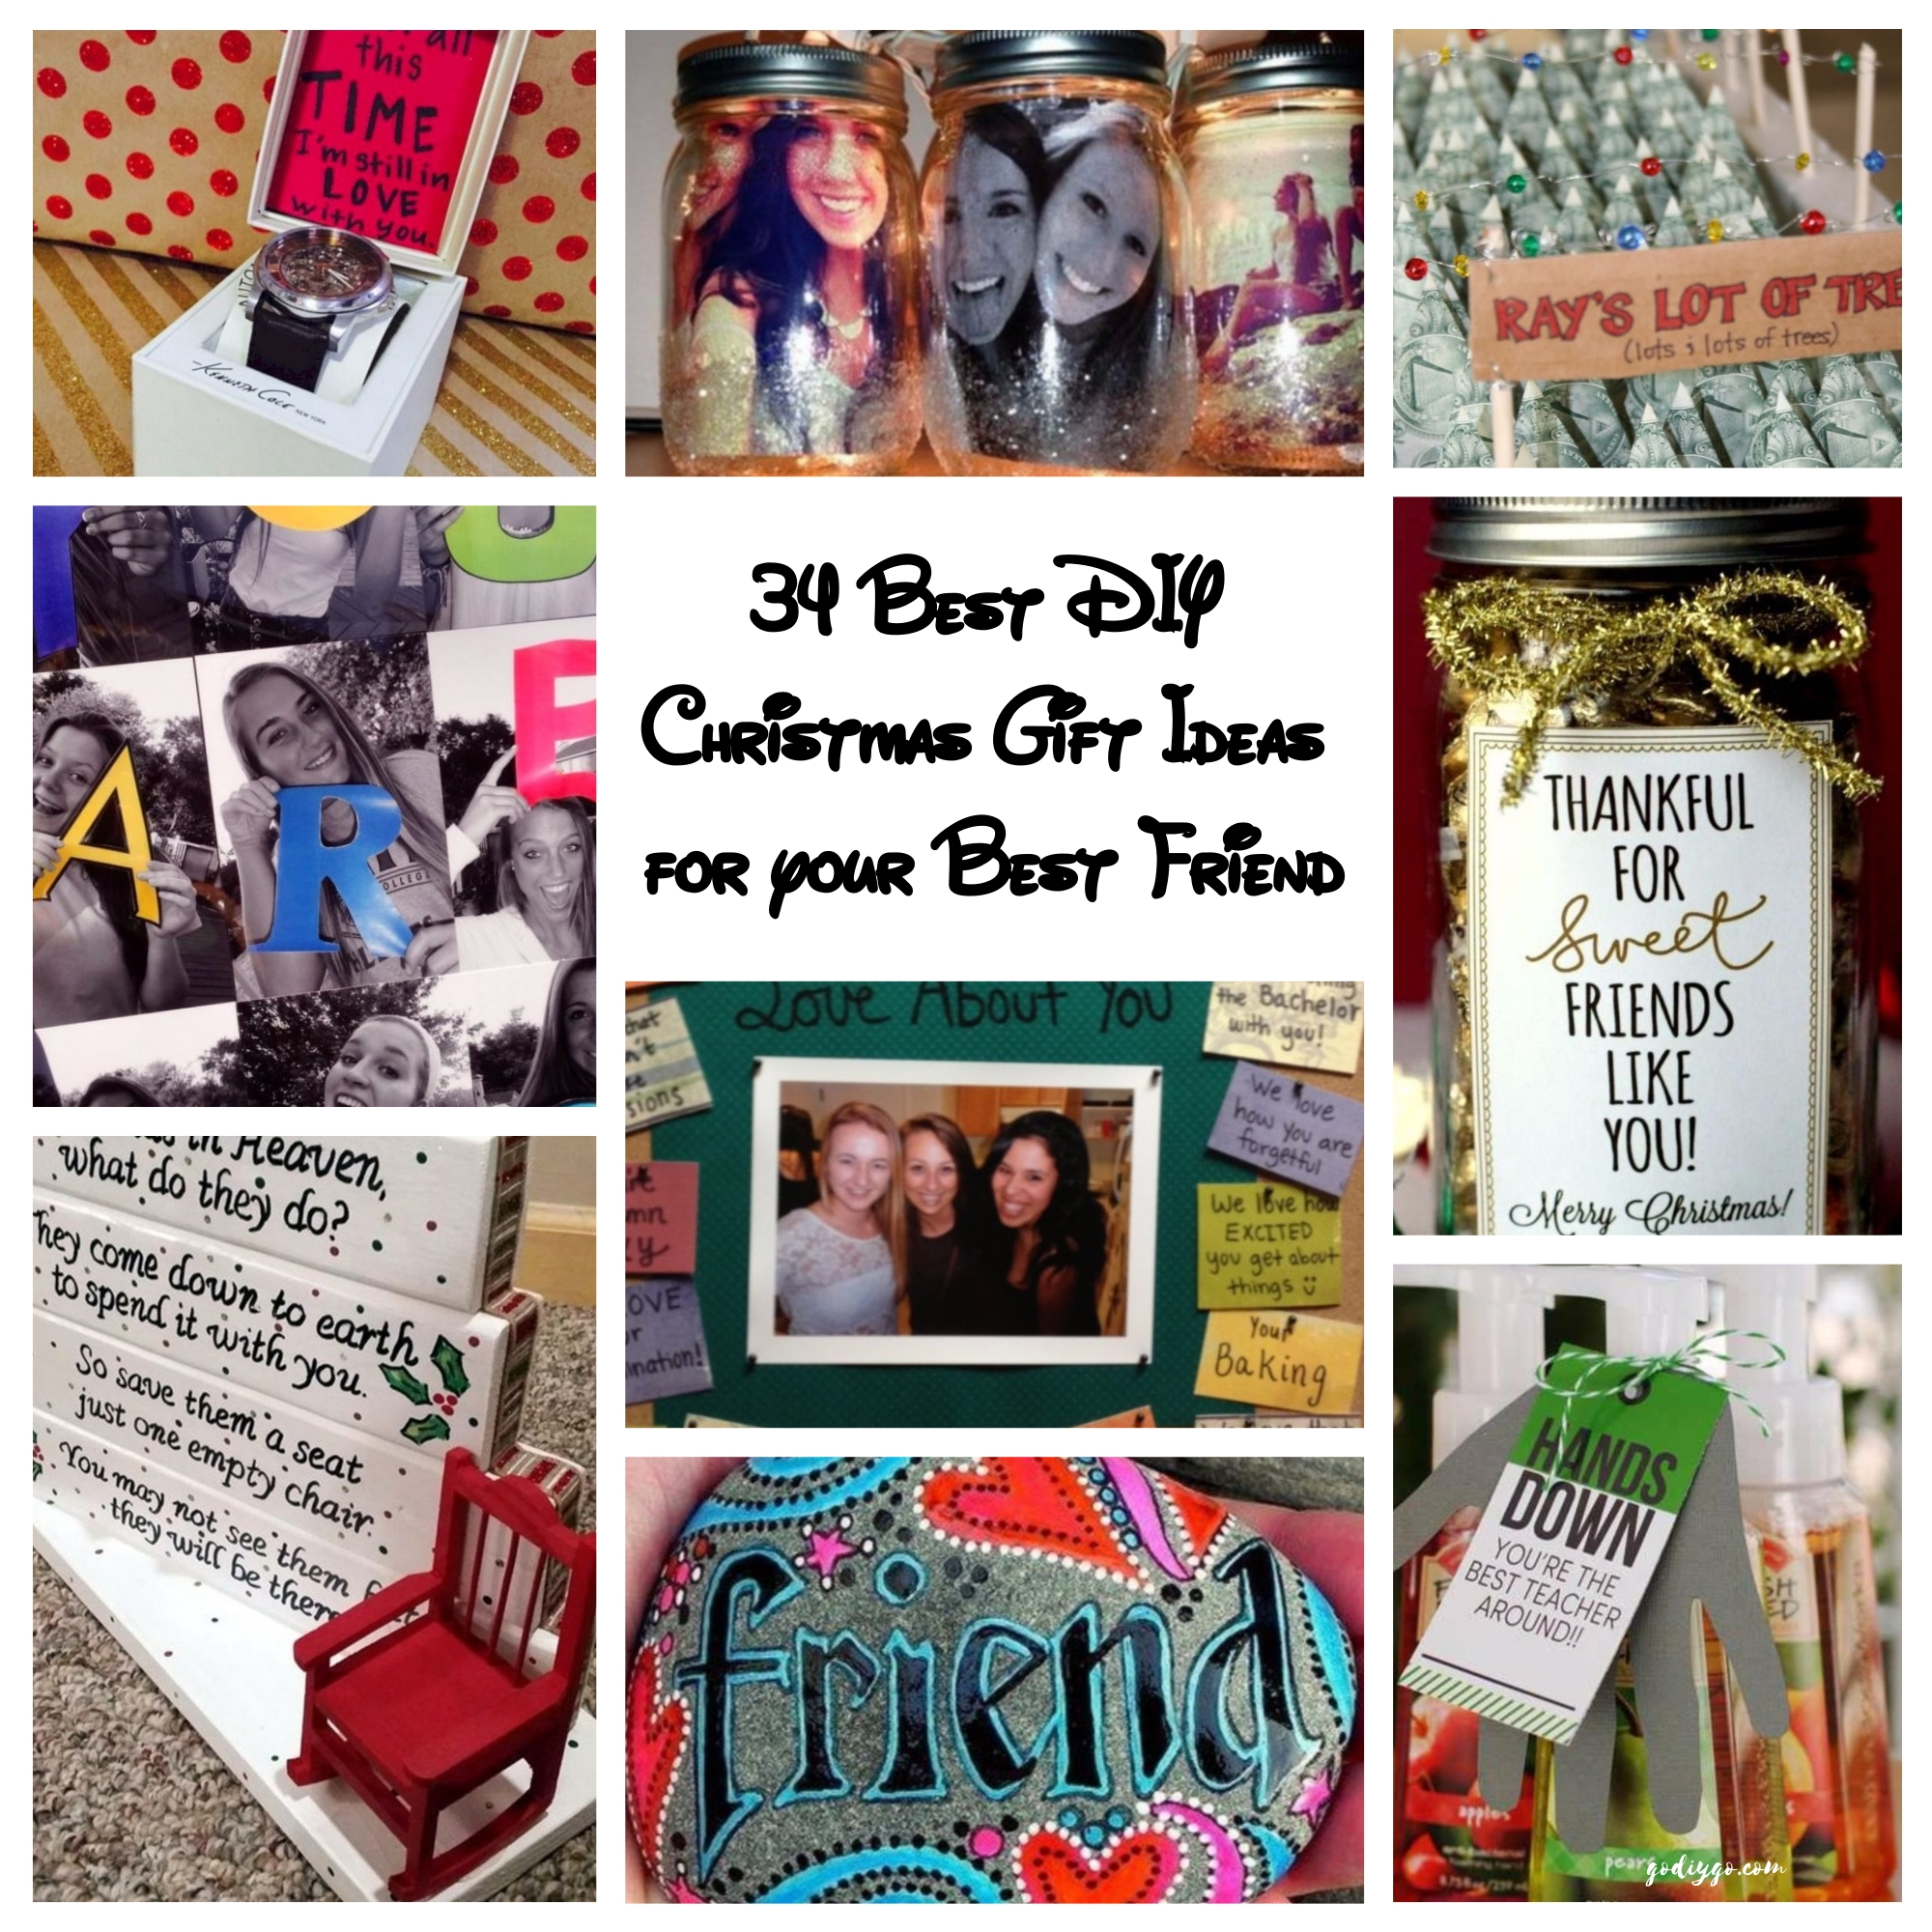 34 best diy christmas gift ideas for your best friend Christmas ideas for your best friend